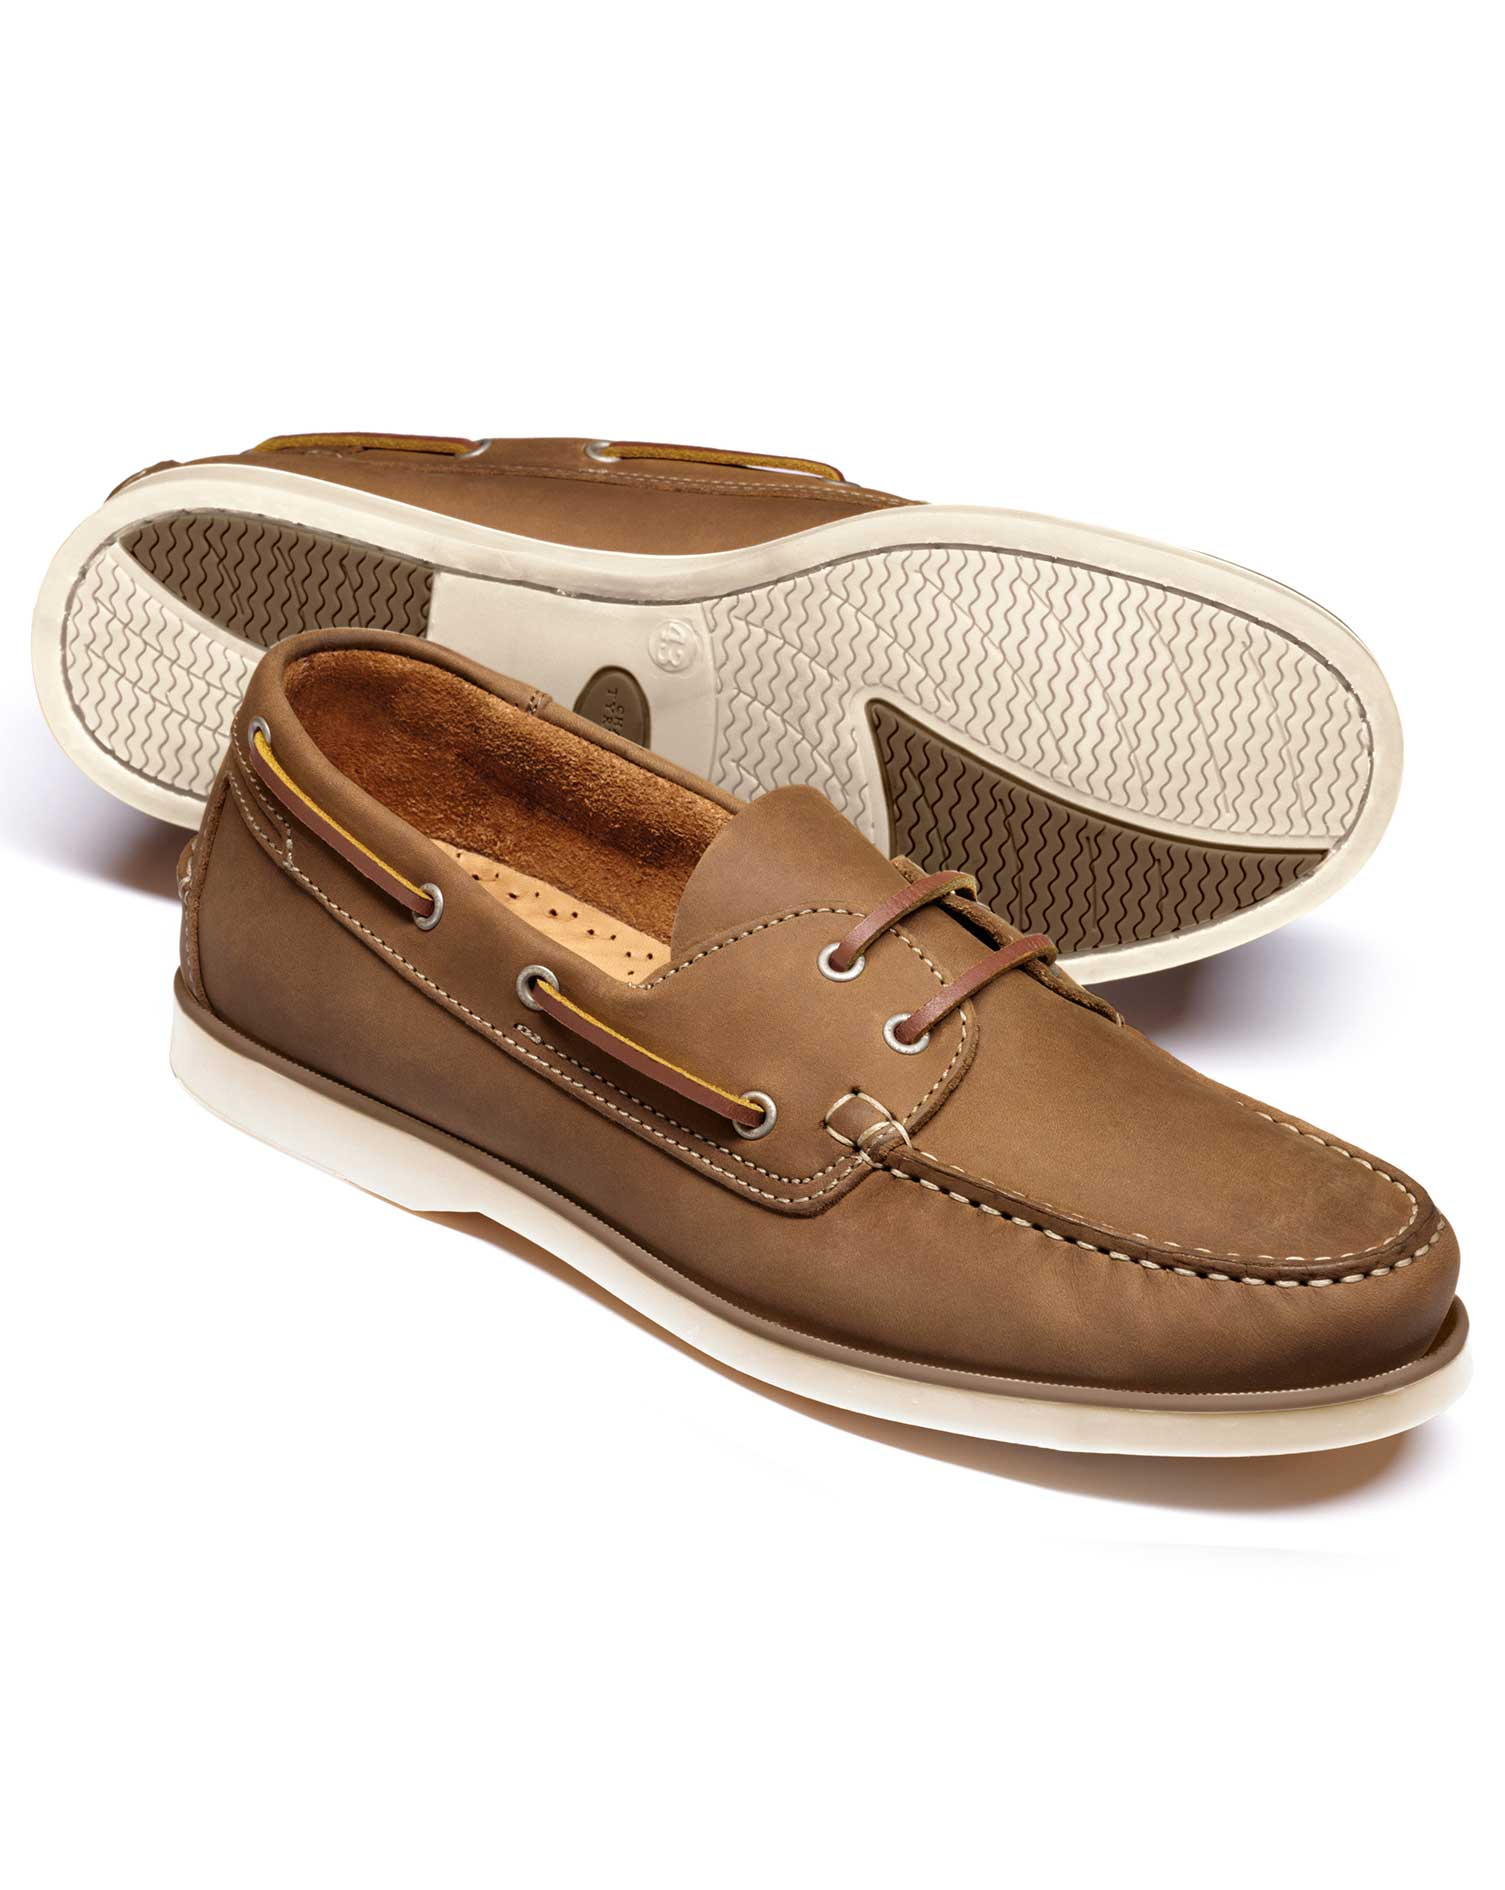 Tan Fowey Boat Shoes Size 11 R by Charles Tyrwhitt